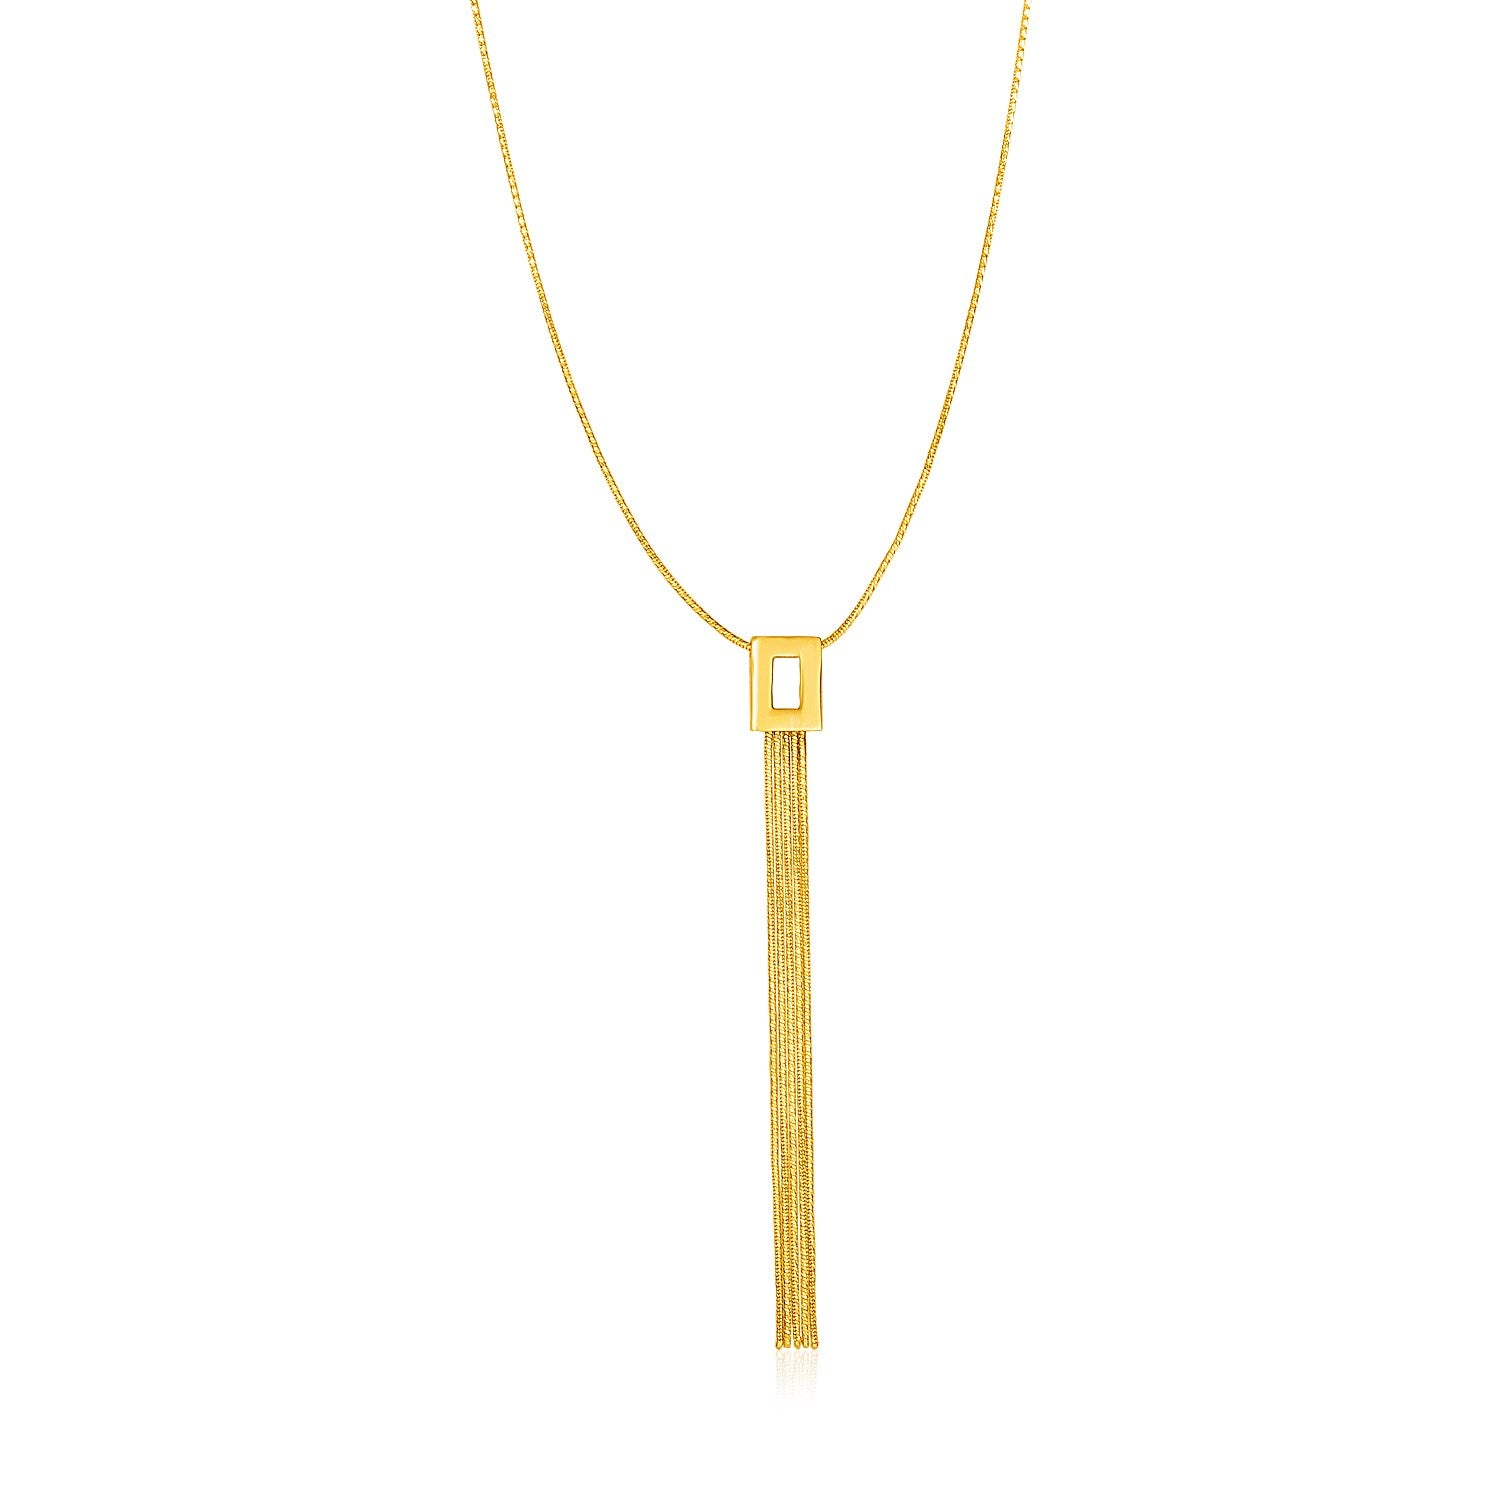 14K Yellow Gold Lariat Style Necklace